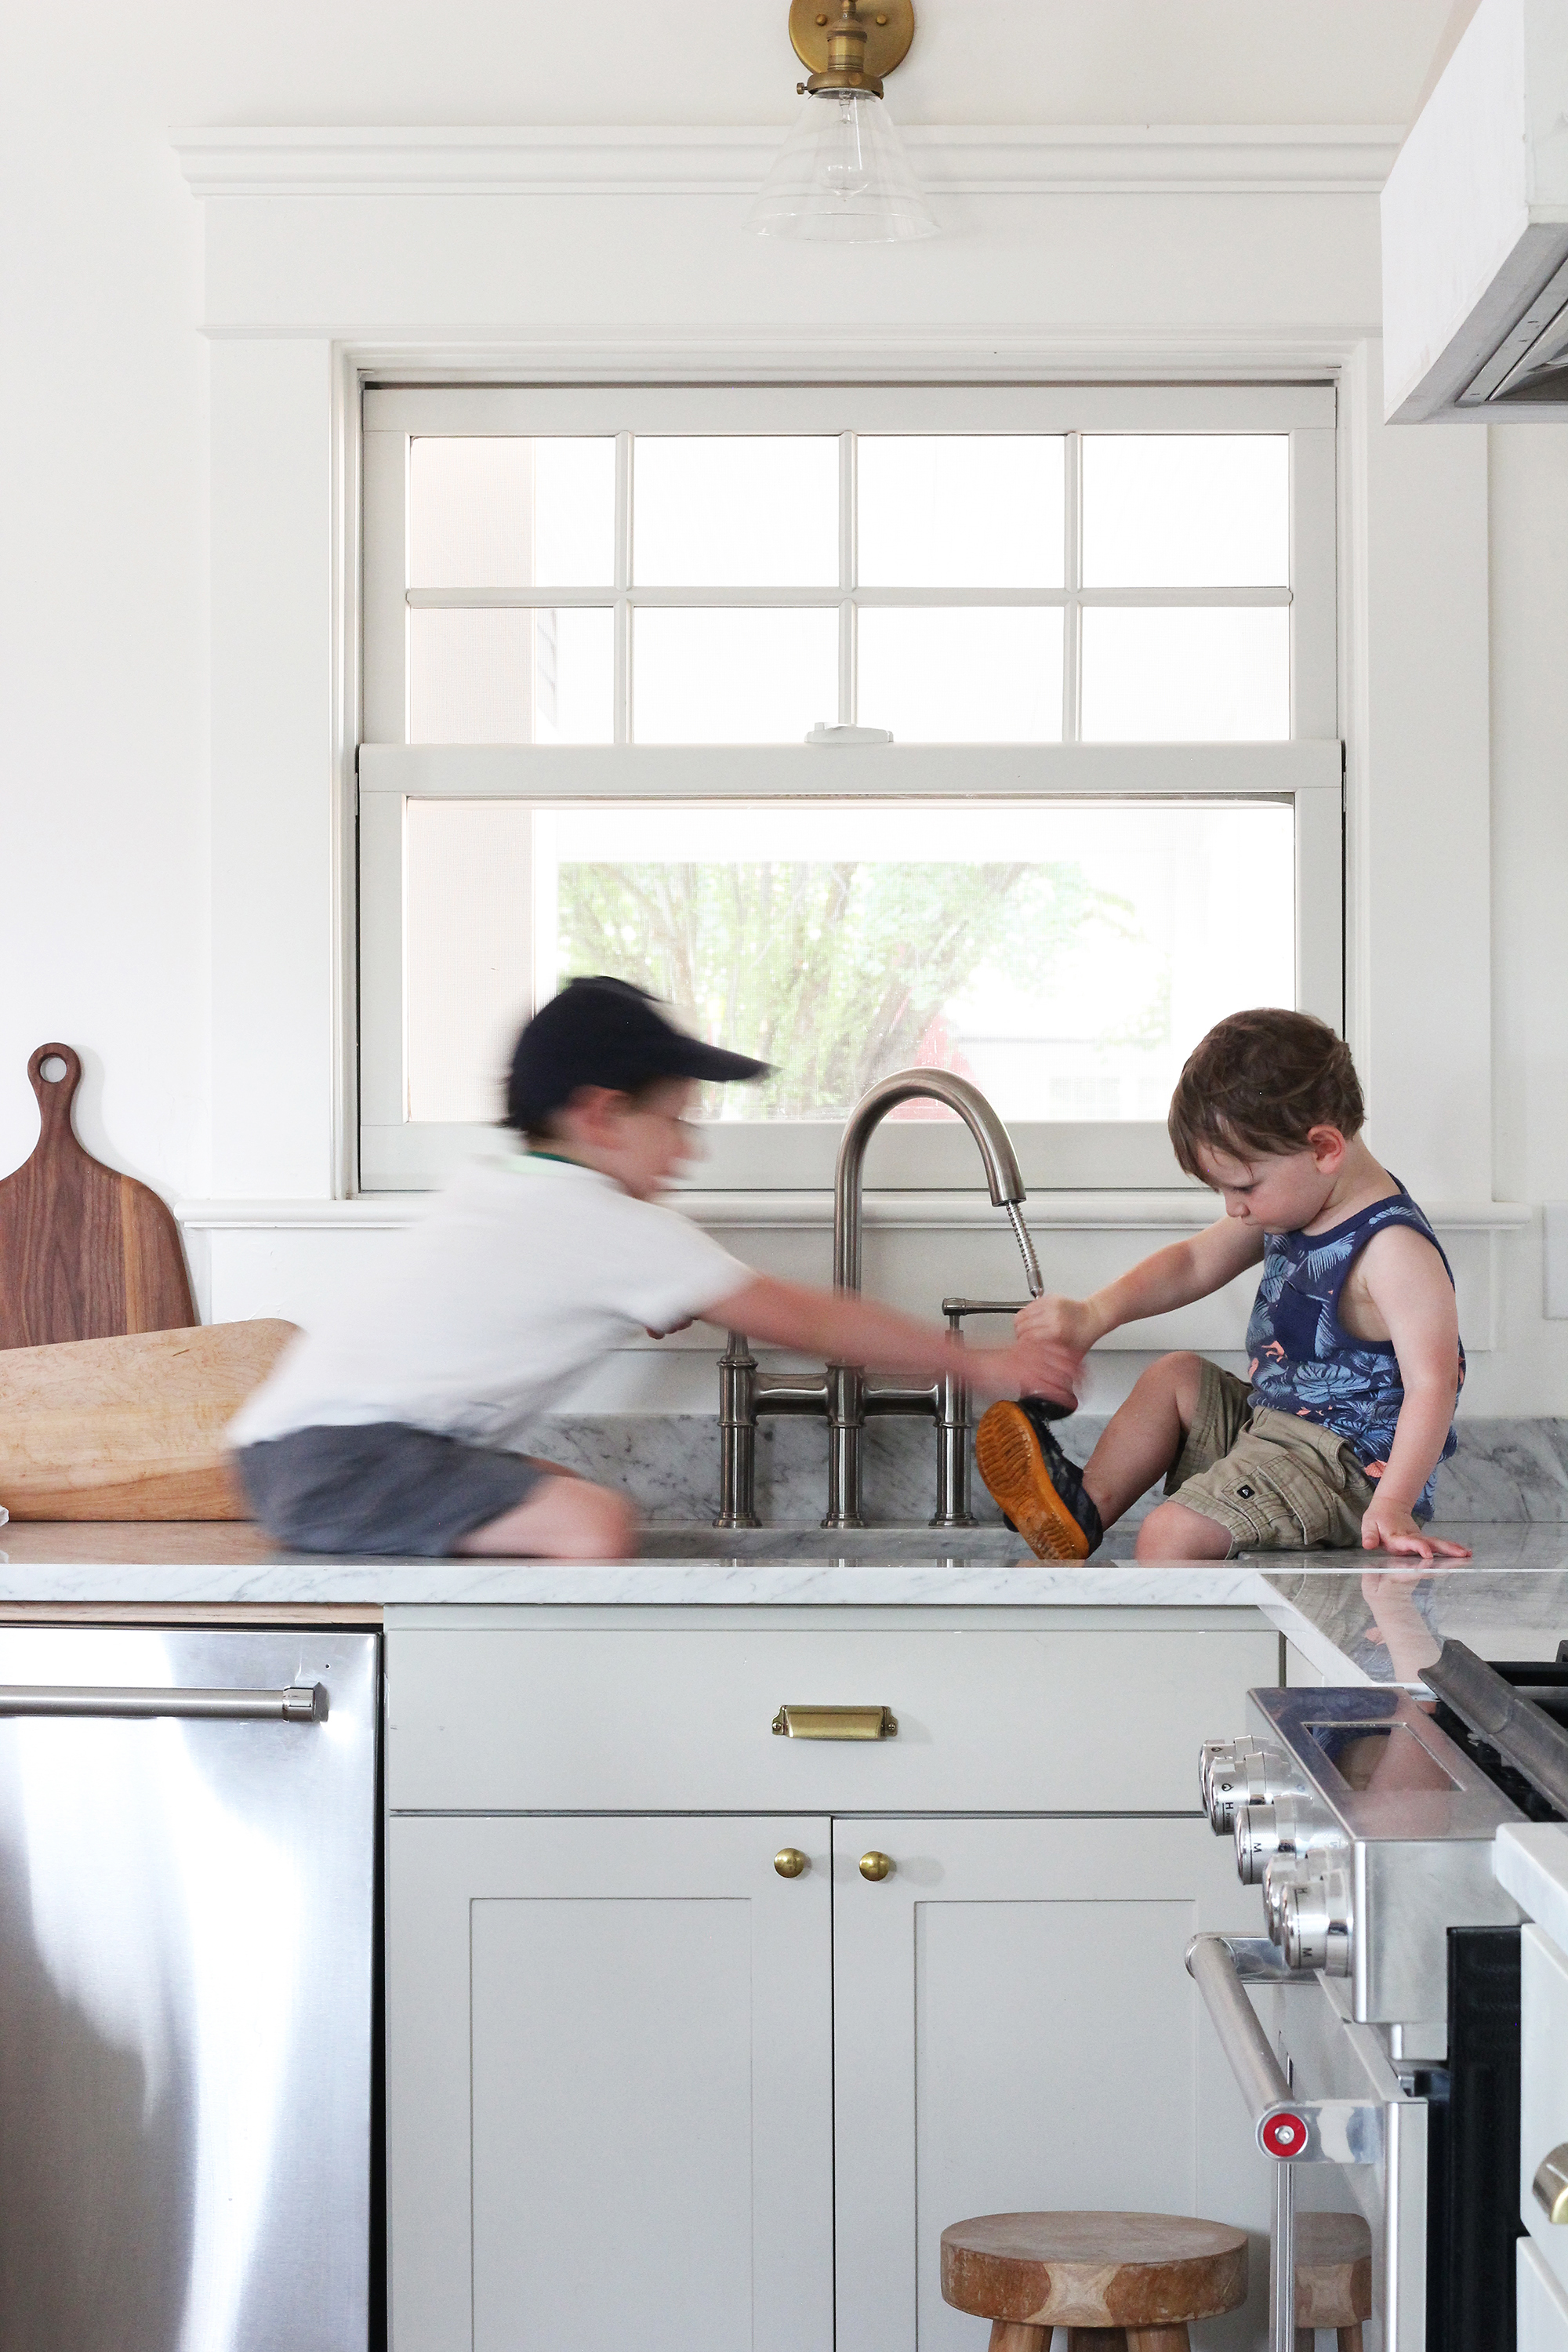 The Grit and Polish - Porch Kitchen Boys in Sink Shoe 1.2